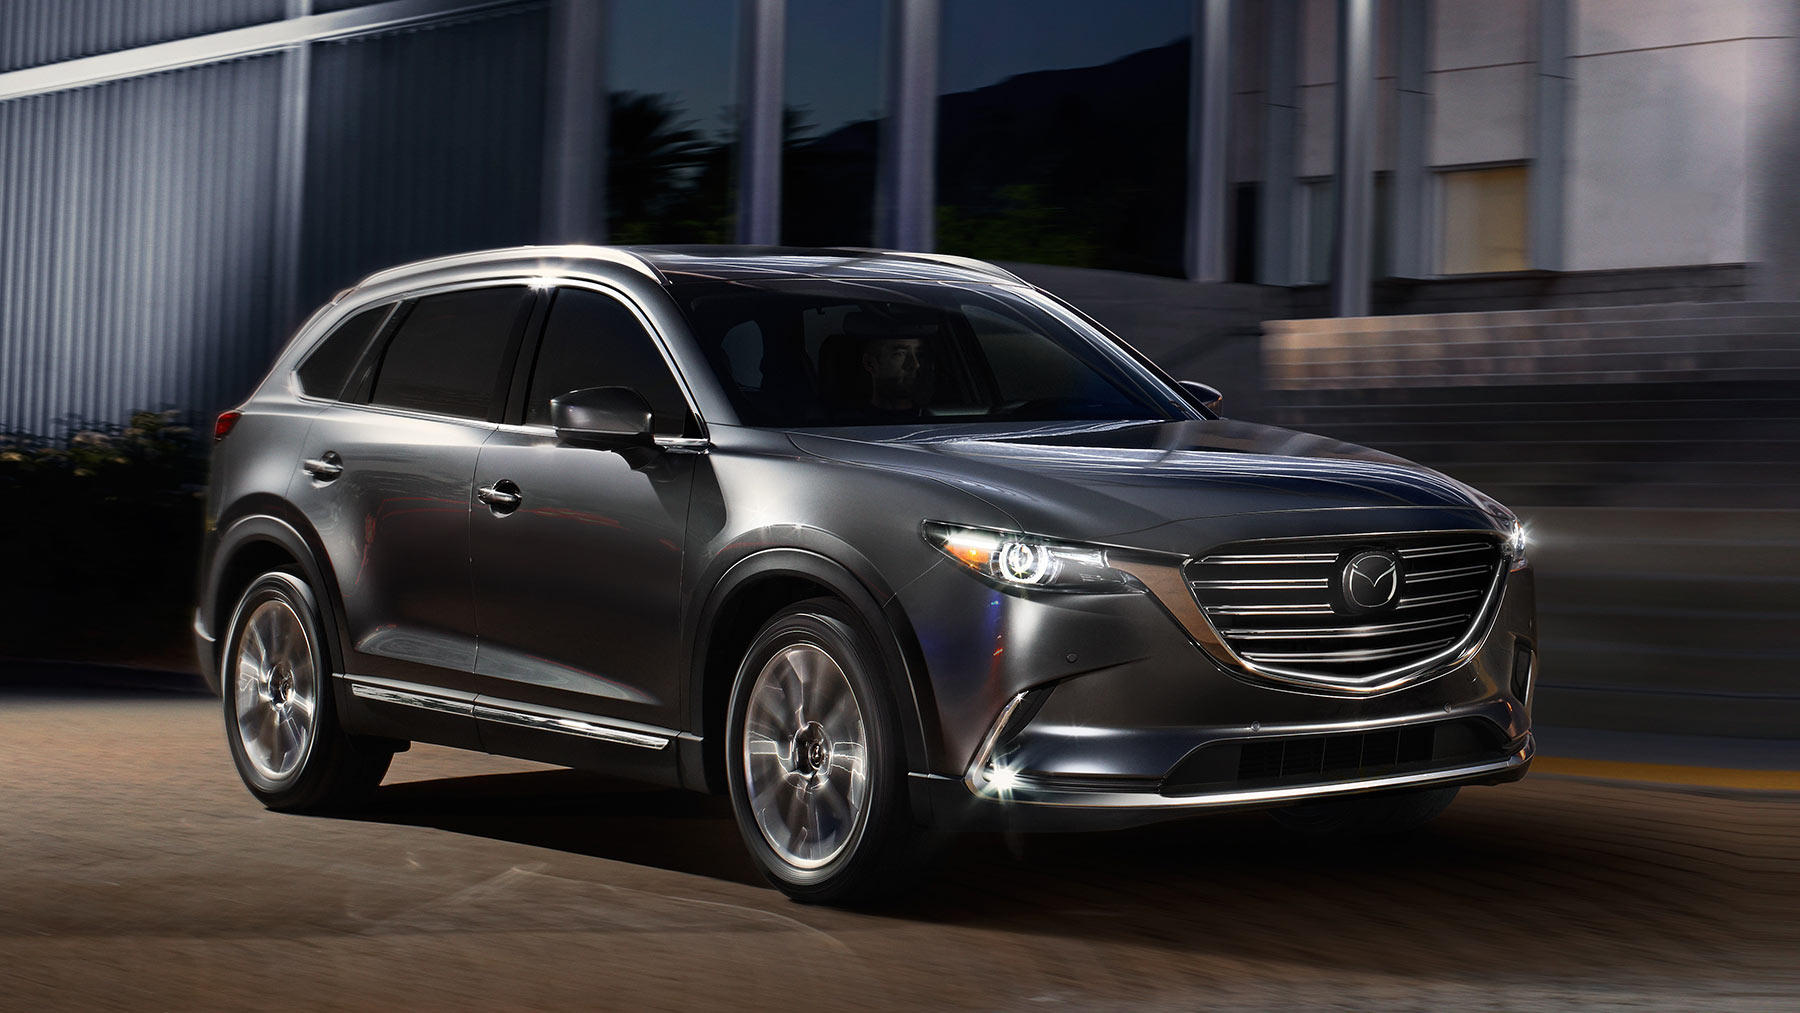 2018 Mazda Cx9 Overview  The News Wheel